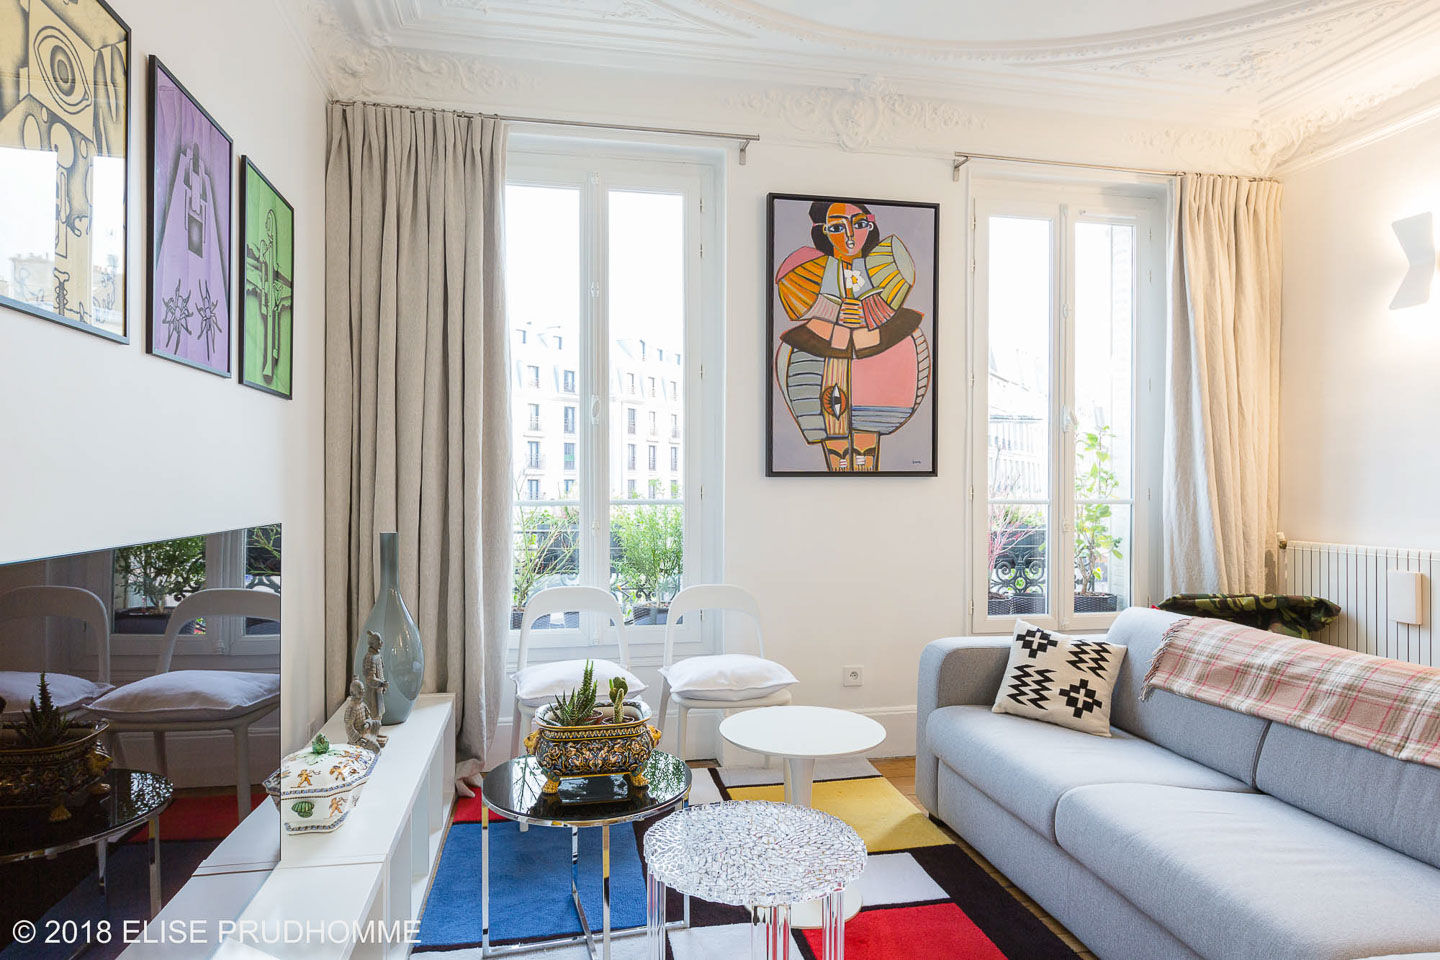 Host In Paris uses a strict cleaning procedure for the apartments.